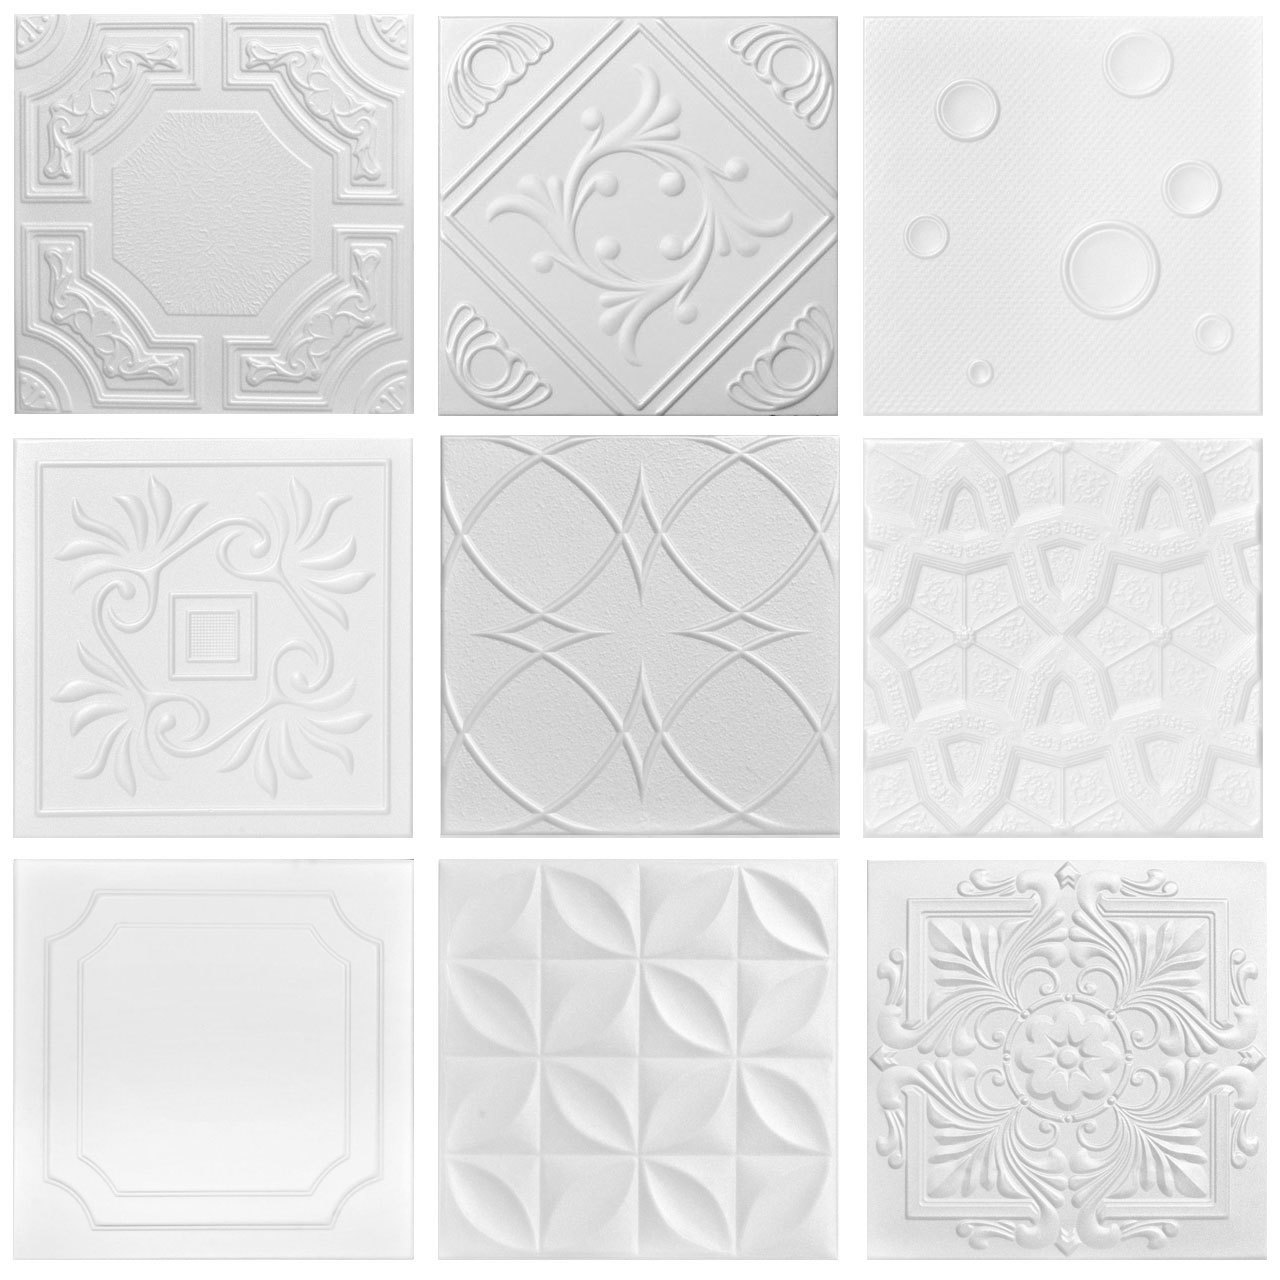 3 Full Styrofoam Tiles Sample Pack